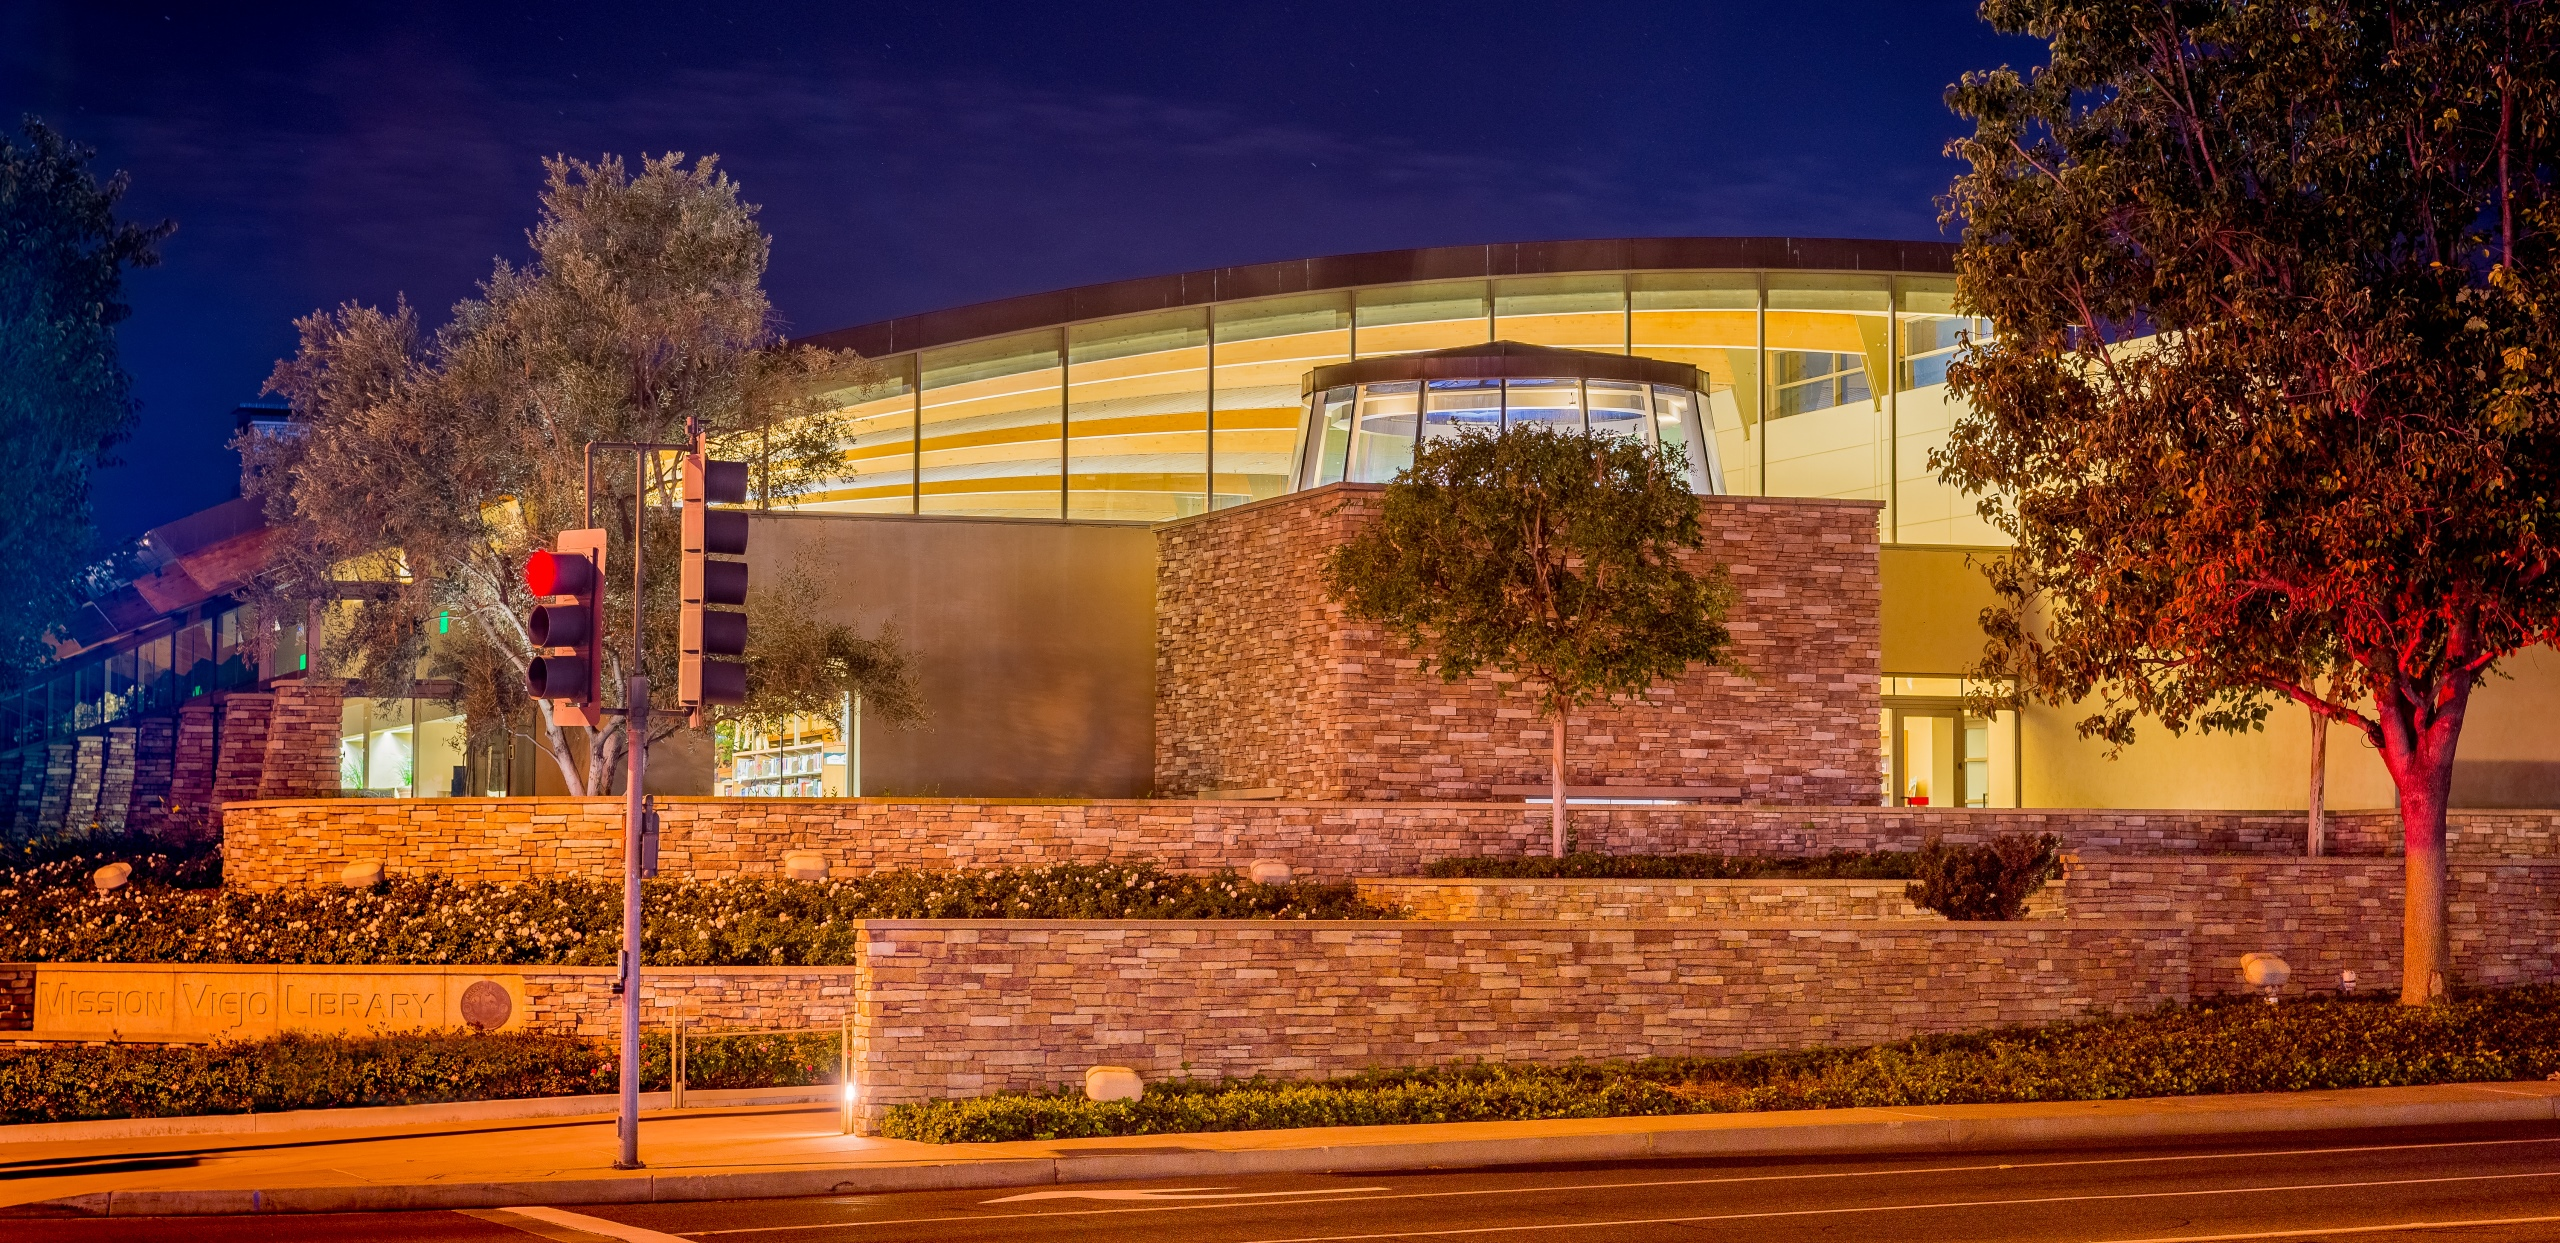 Mission Viejo Library at Night